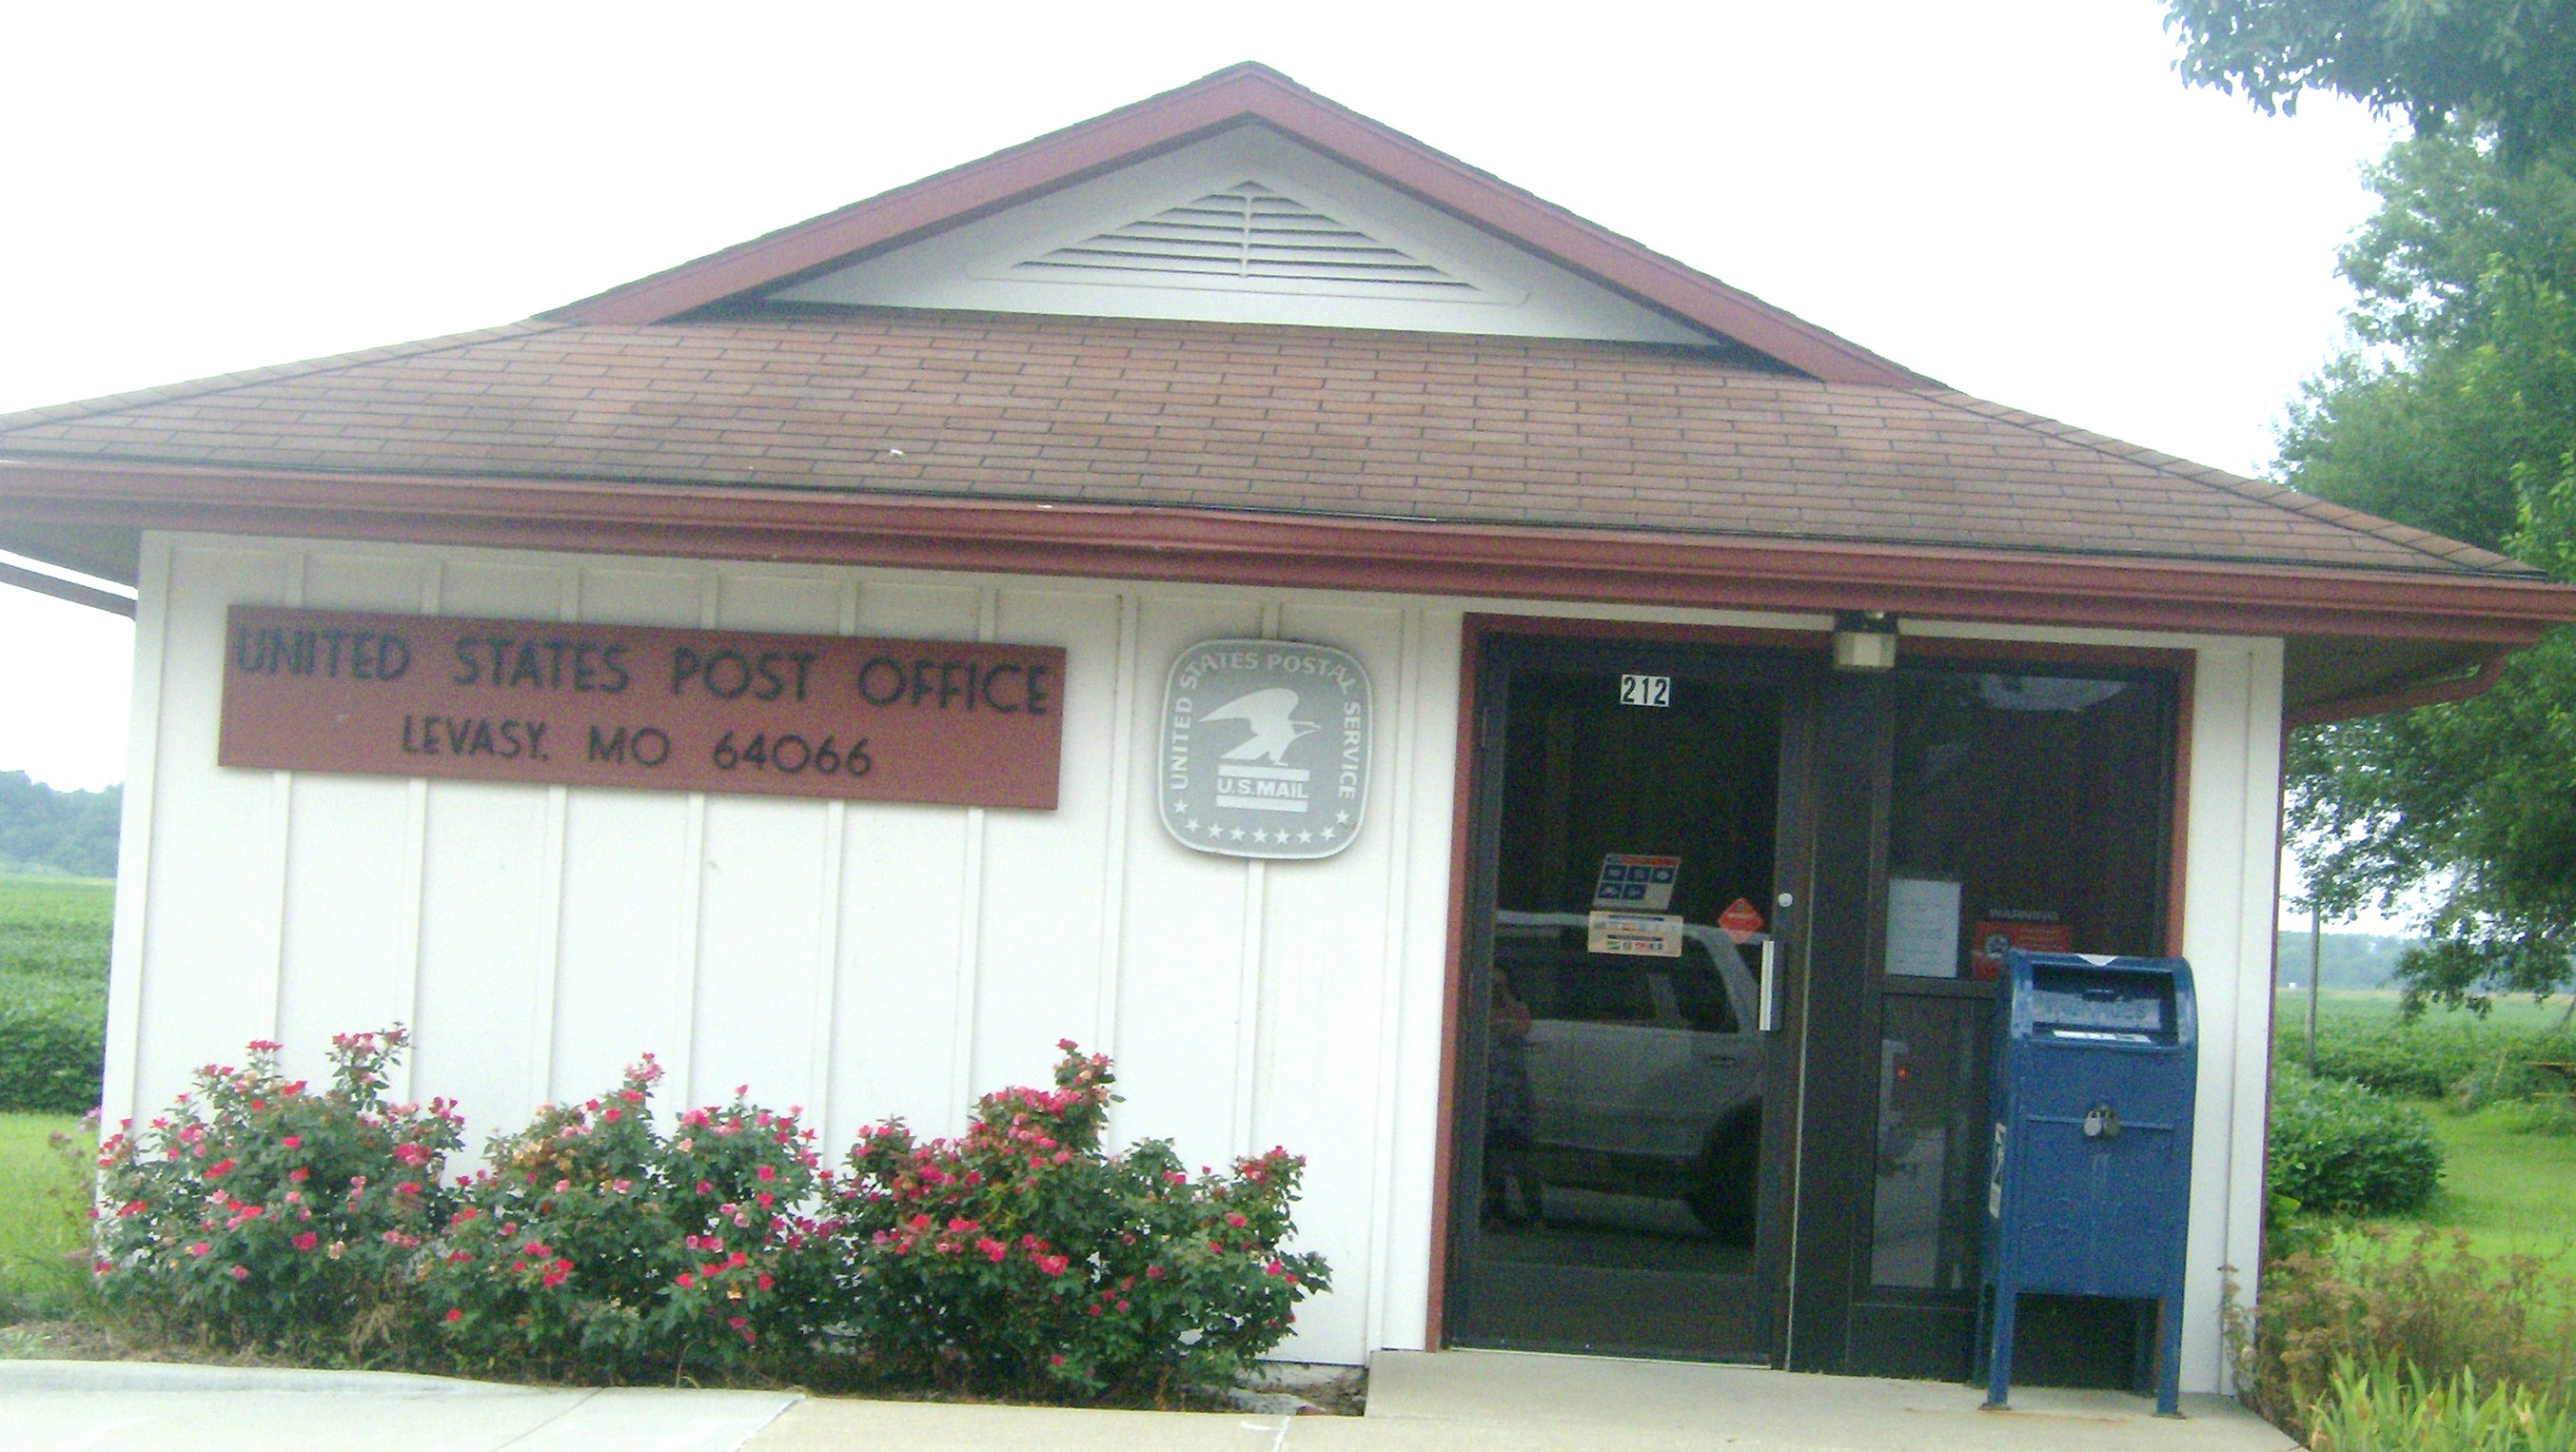 Levasy and Sibley Post Office hours